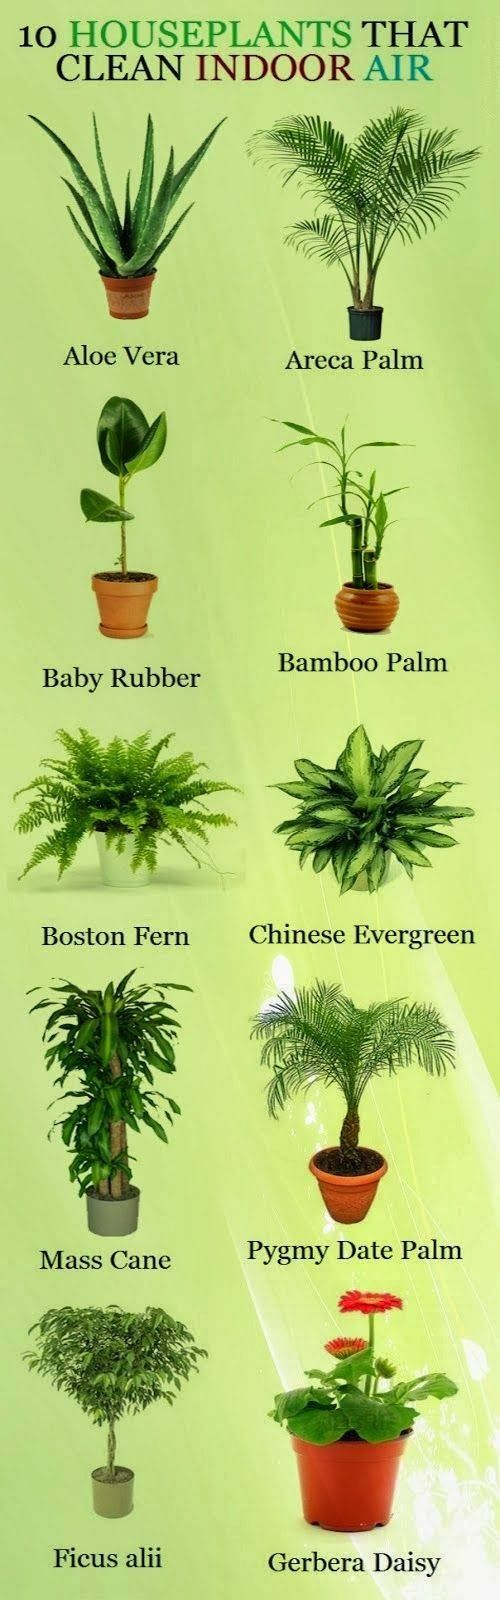 Looking At All The Lists Like This I M Thinking That Probably Houseplants Clean Air Want An Aloe Vera Plant